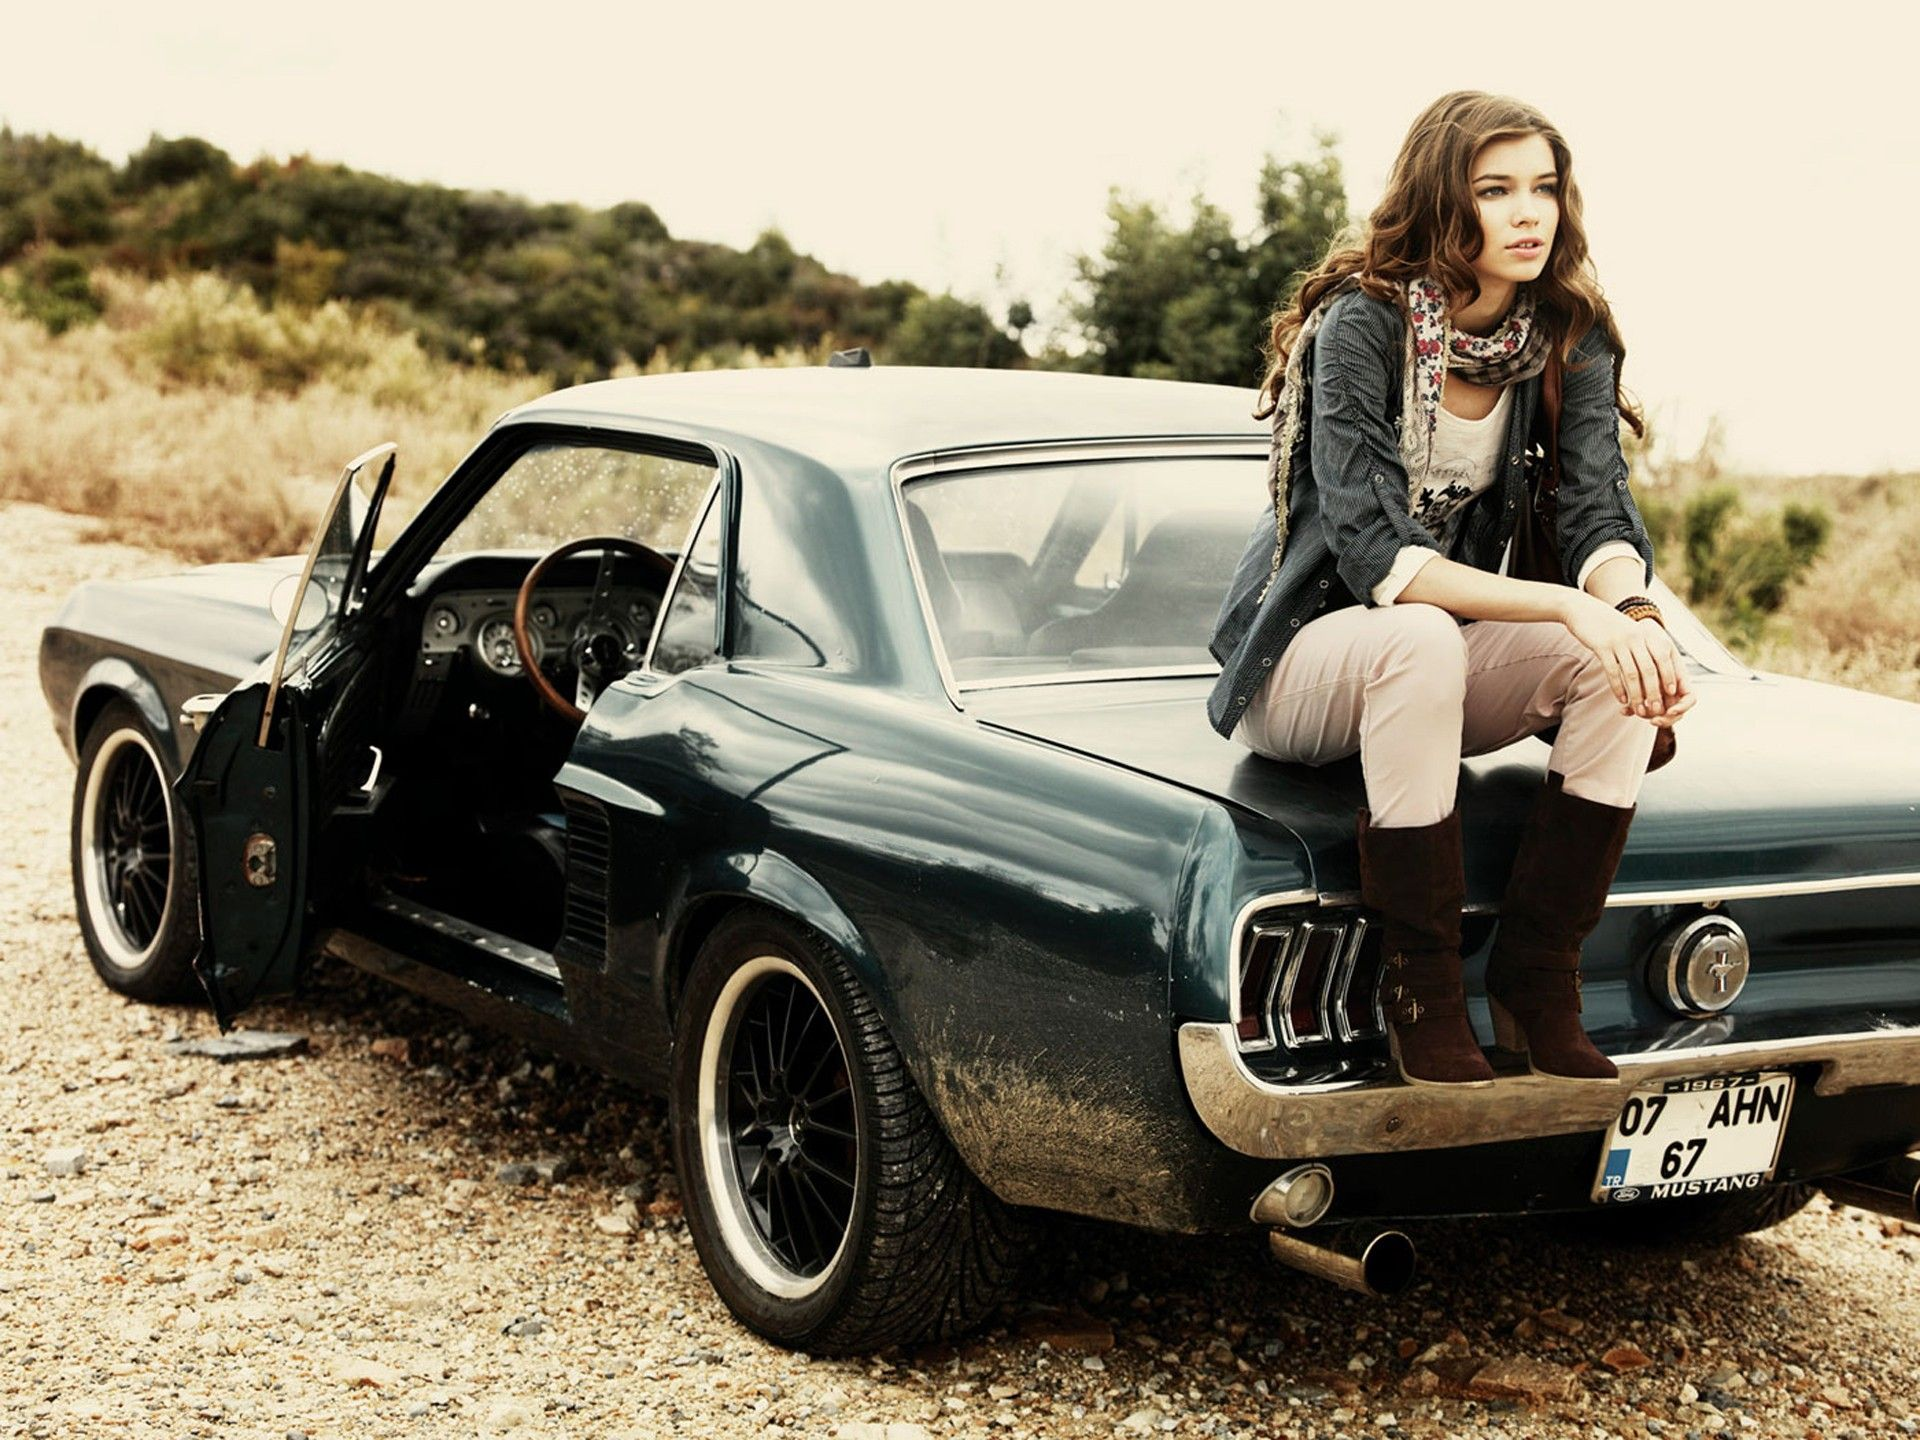 Vintage Photography Muscle Cars Turkey Ford Mustang Normal Wallpaper